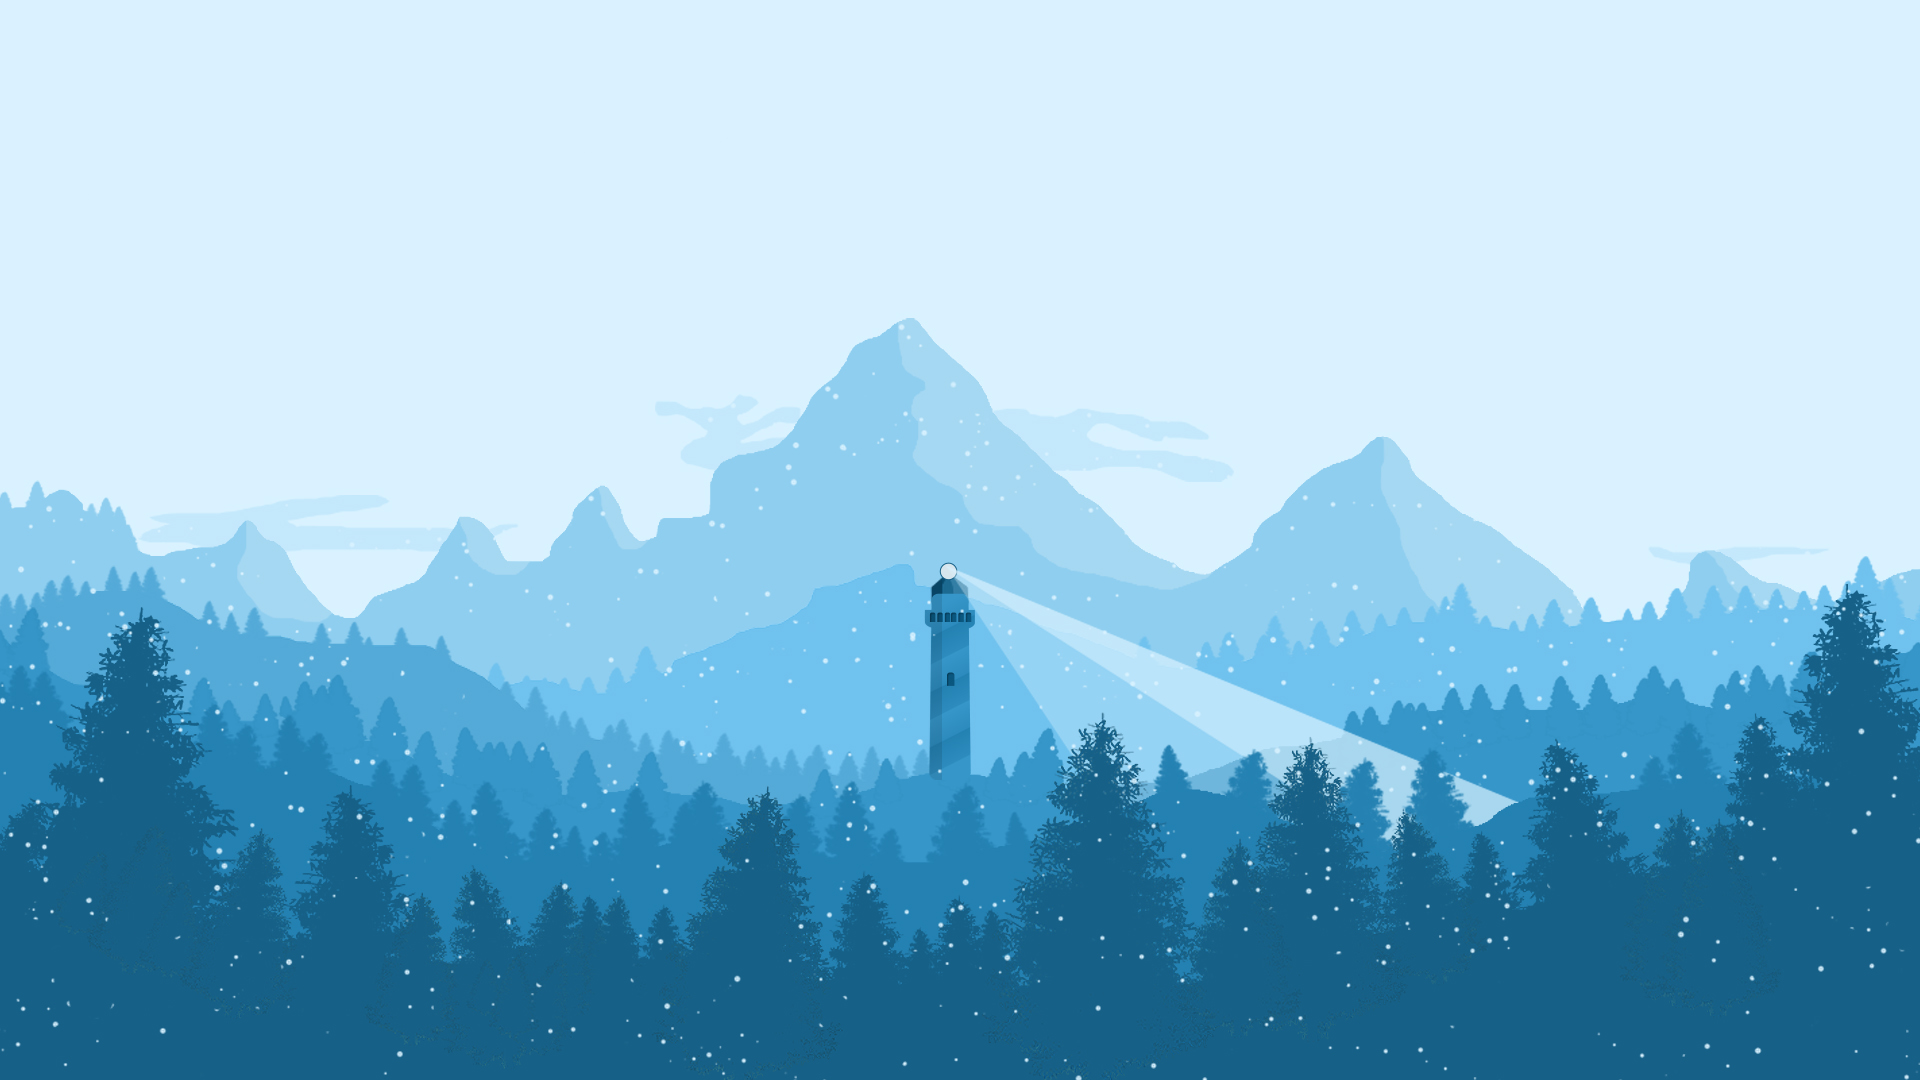 Top 5 wallpapers de paisajes minimalistas con estilo flat - 2d nature wallpapers ...